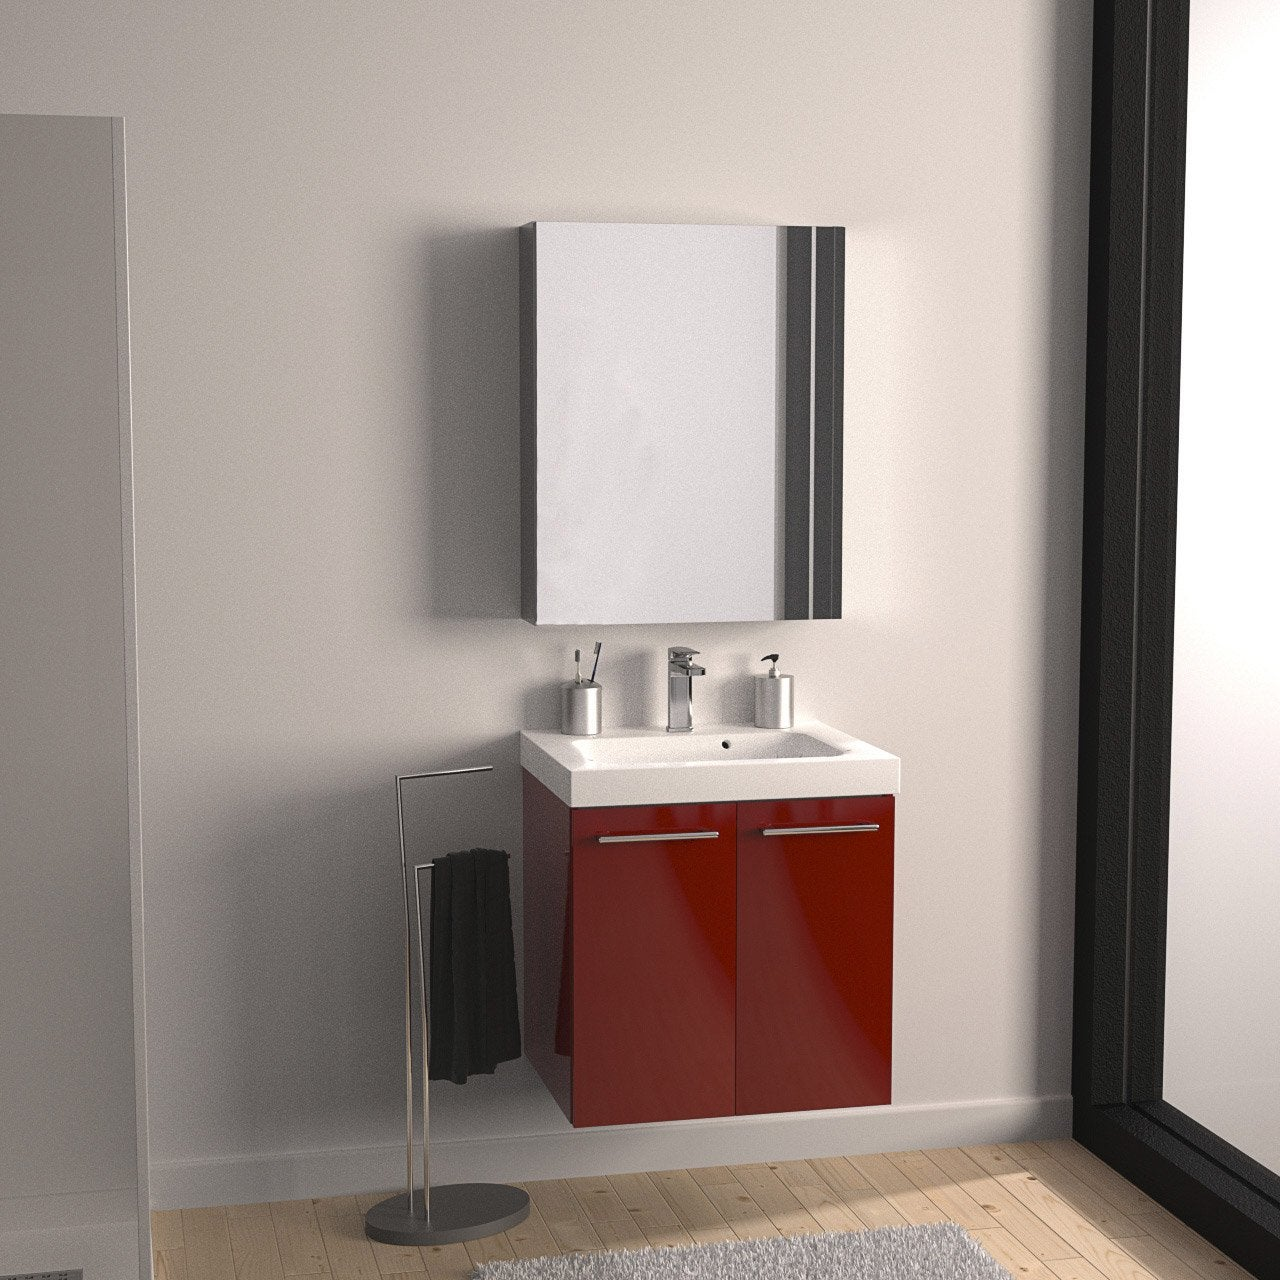 Meuble vasque x x cm rouge sensea remix for Salle de bain 3m2 leroy merlin